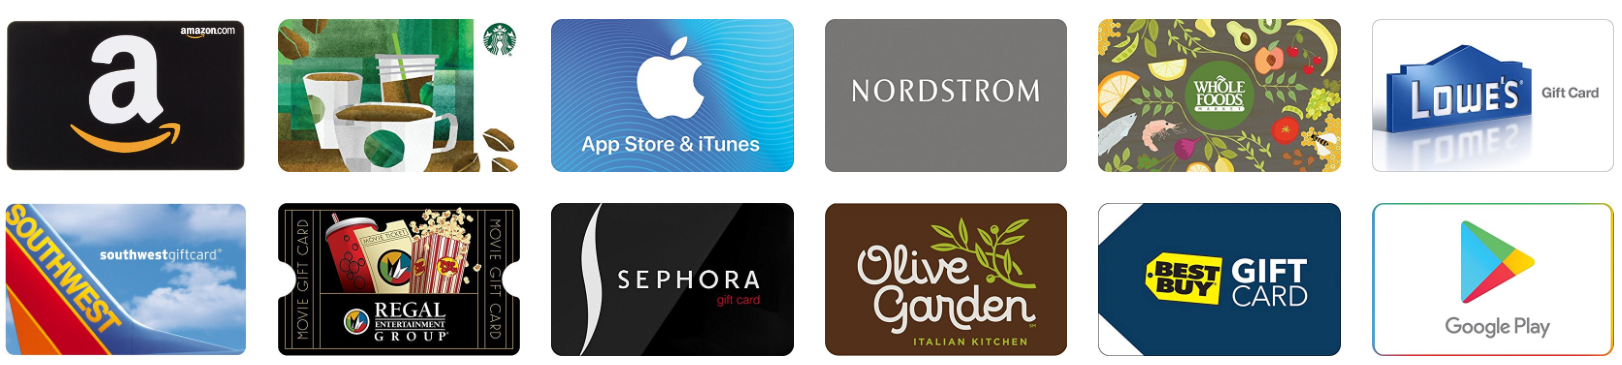 amazon gift cards.png